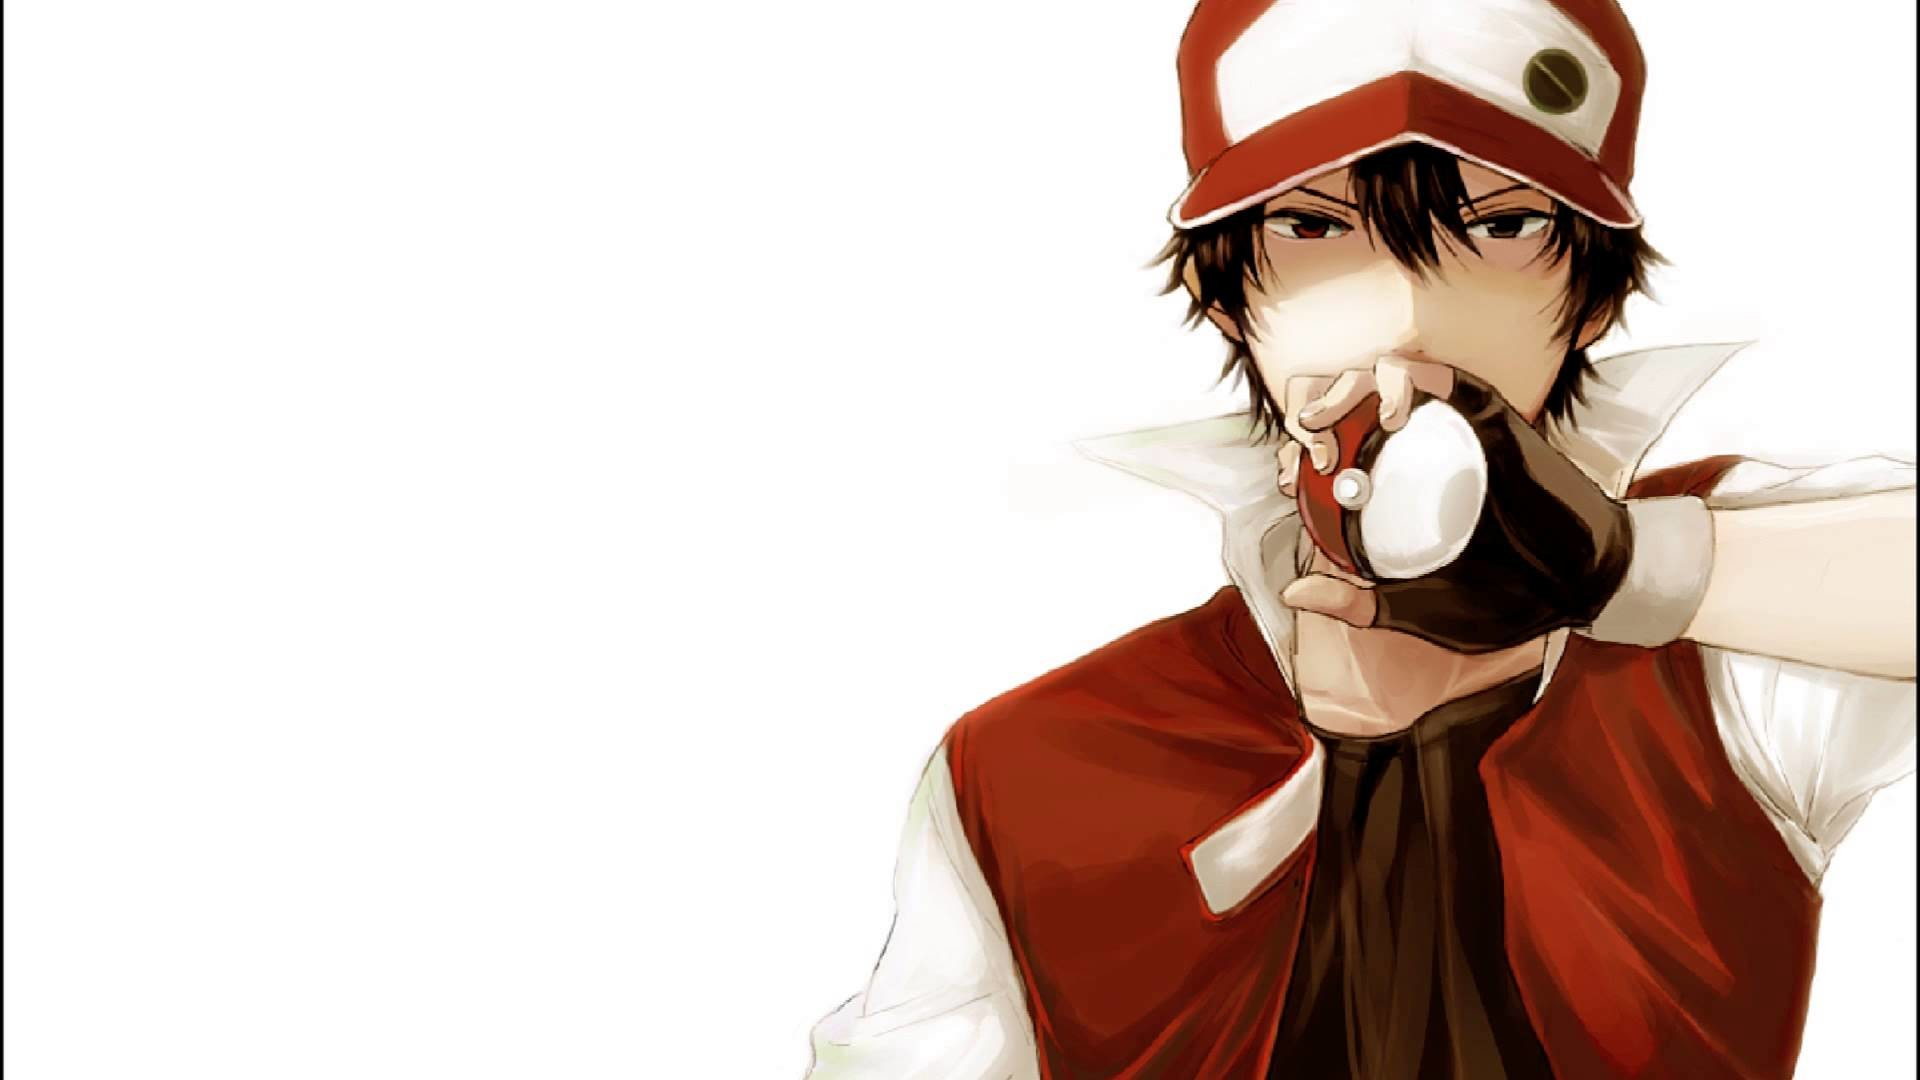 Res: 1920x1080, Images For > Pokemon Trainer Red Wallpaper